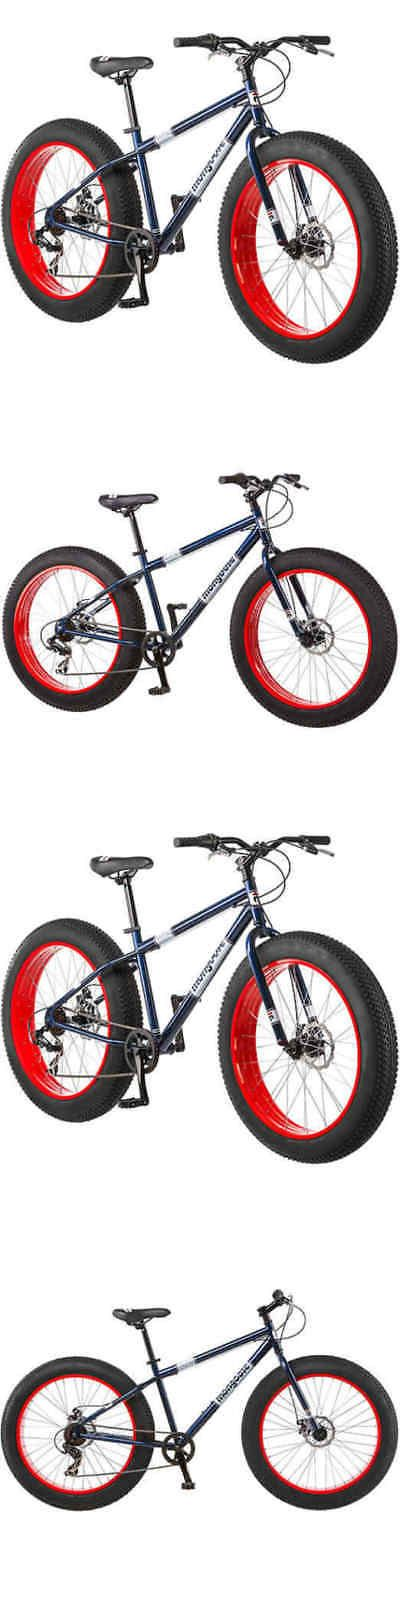 bicycles: 26 Mongoose Dolomite Men S 7-Speed All-Terrain Fat Tire Mountain Bike,Navy Blu -> BUY IT NOW ONLY: $245.14 on eBay!